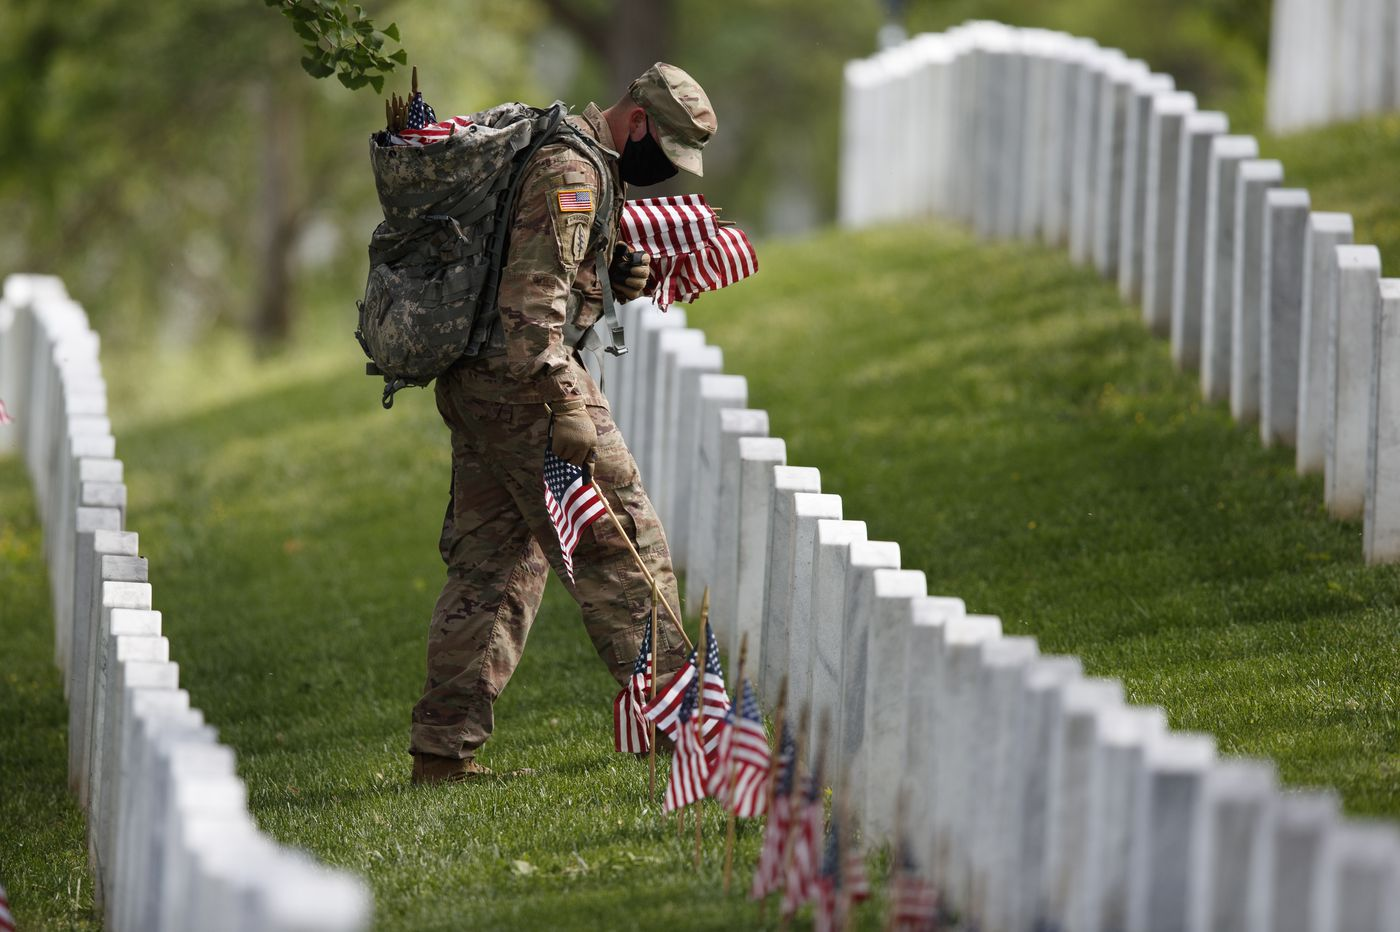 Memorial Day should've inspired unity on COVID-19, not Twitter rants and red-blue divisions | Trudy Rubin